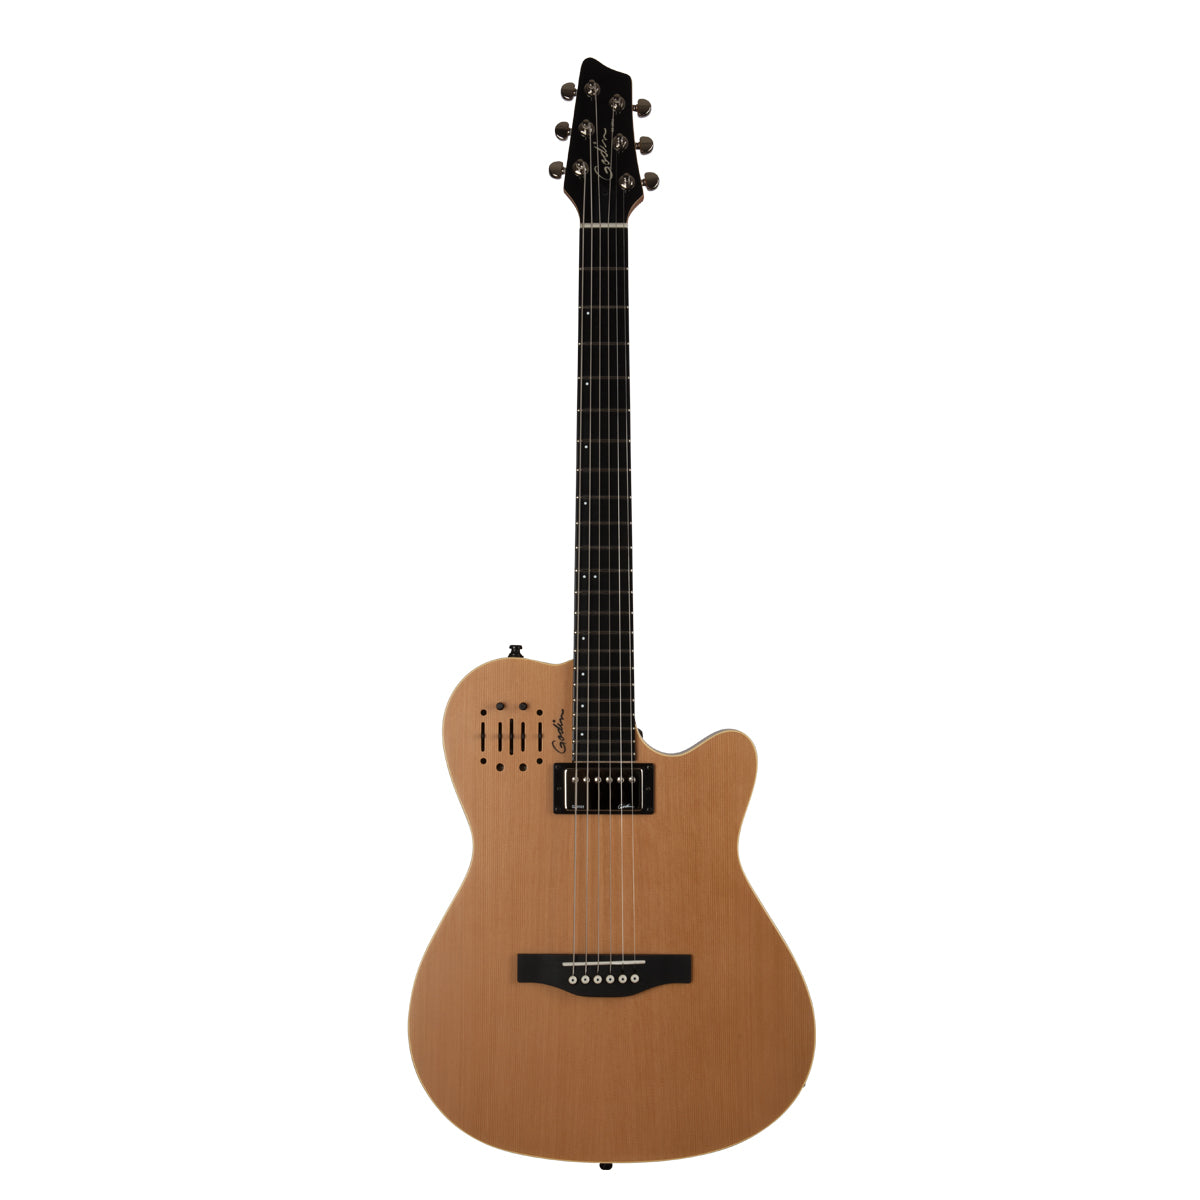 Godin A6 Ultra Natural SG electric Acoustic Guitar